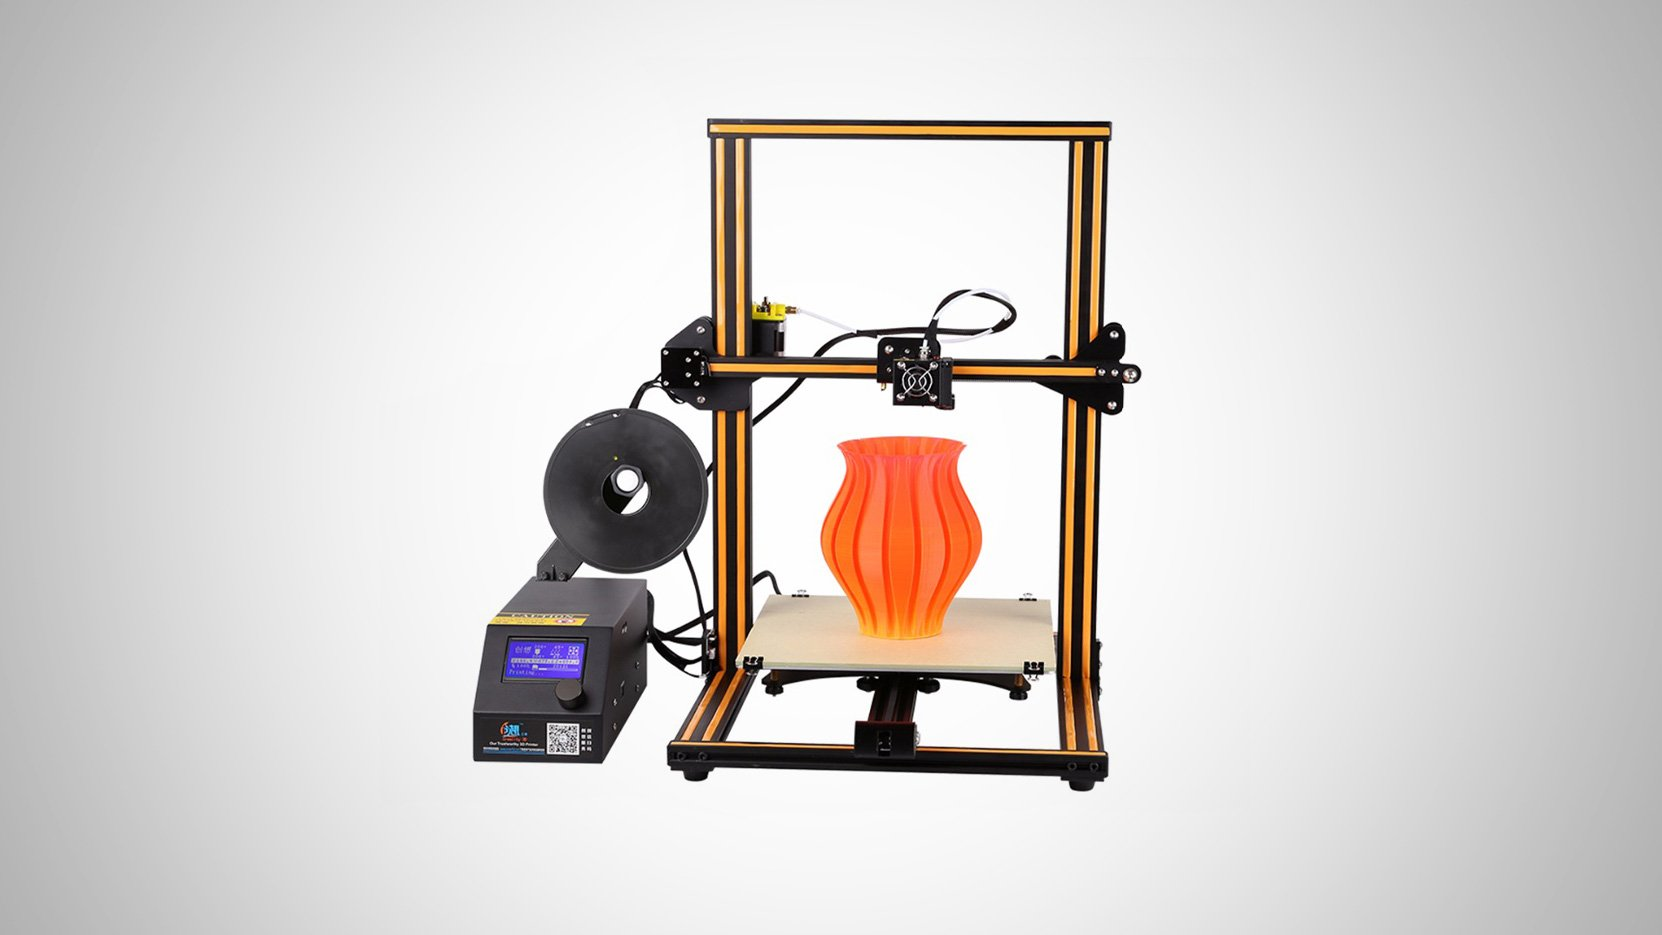 [DEAL] Print Big with the Creality CR-10 3D Printer, on Sale at GearBest | All3DP